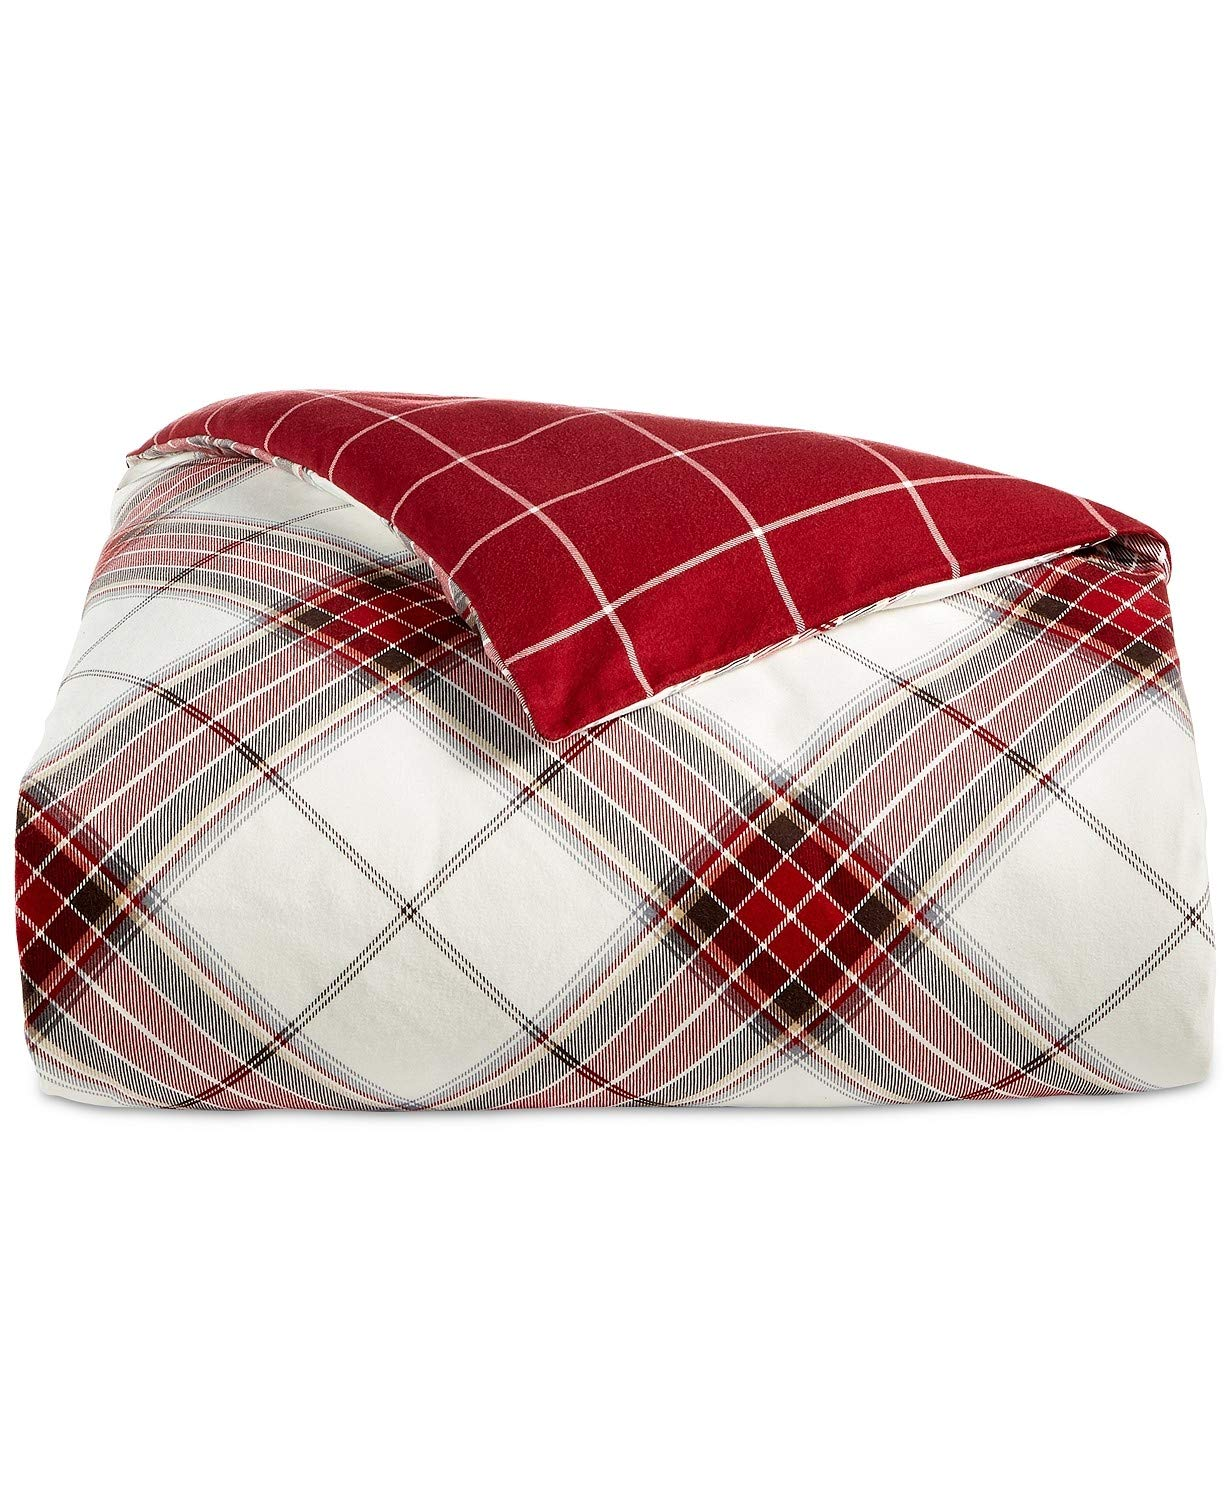 Martha Stewart Collection Deer Pond Flannel Plaid Full/Queen Duvet Cover